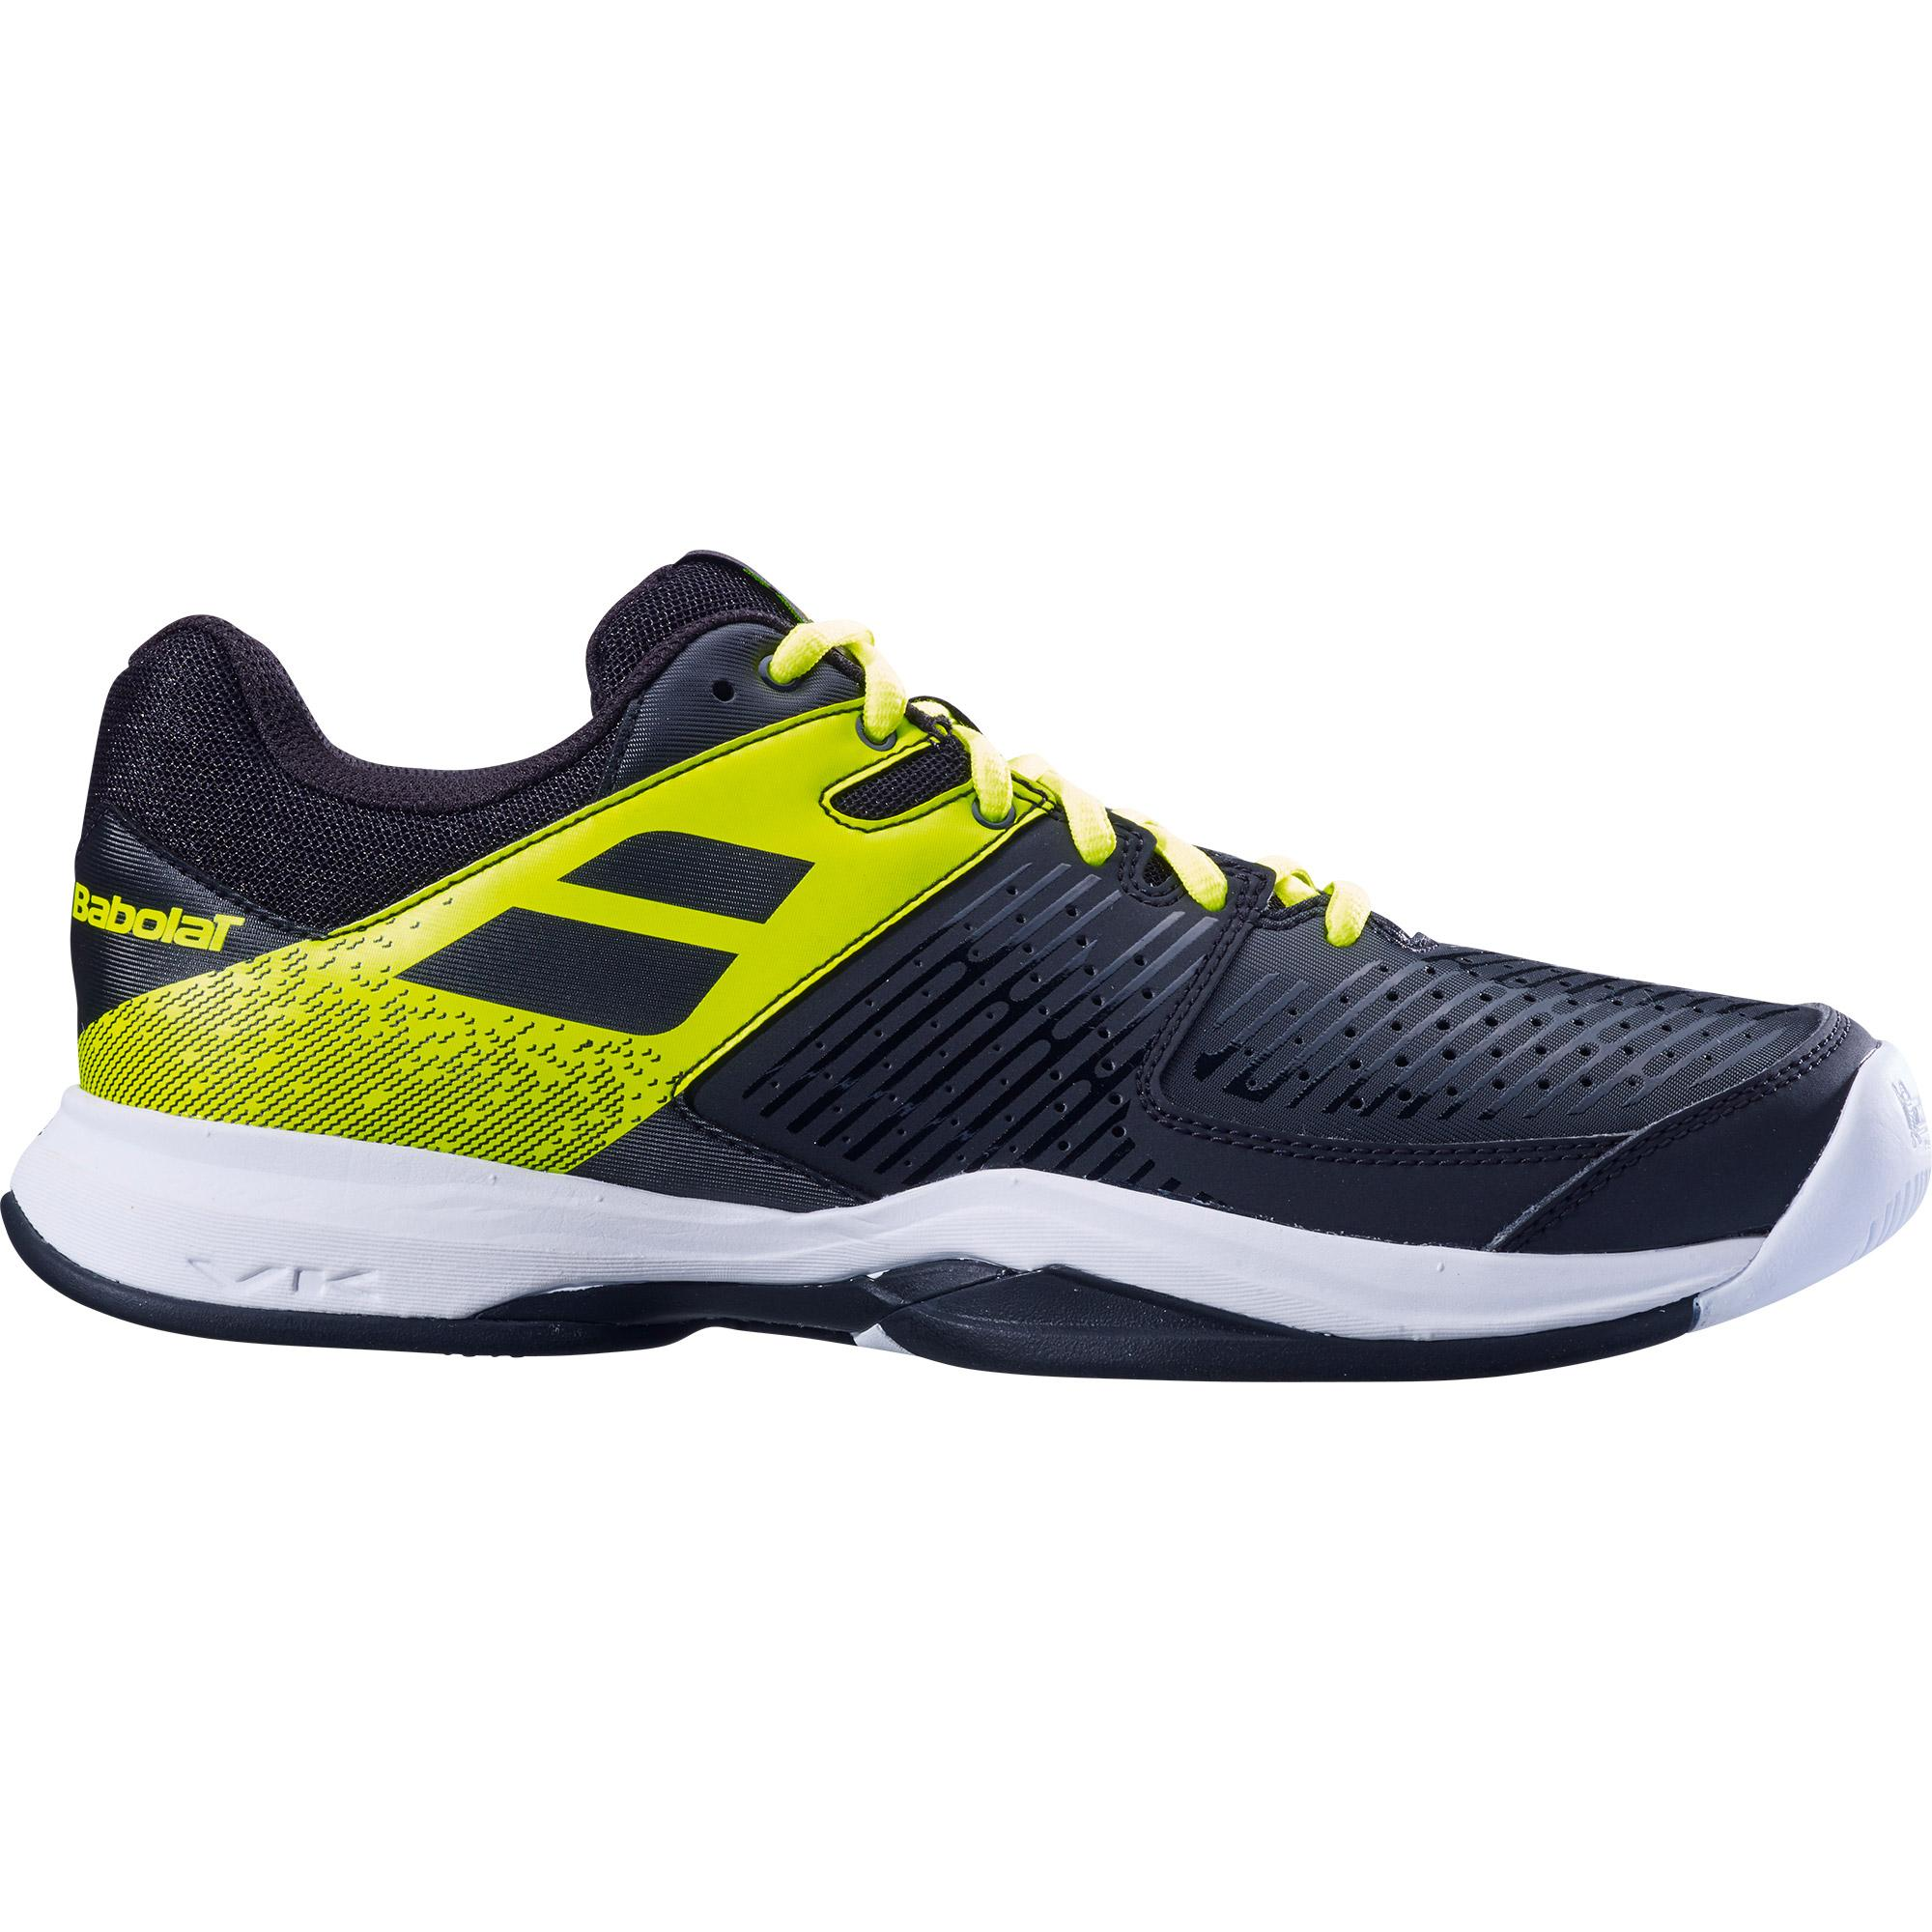 Babolat Tennis Shoes >> Babolat Mens Pulsion Tennis Shoes Black Fluo Aero